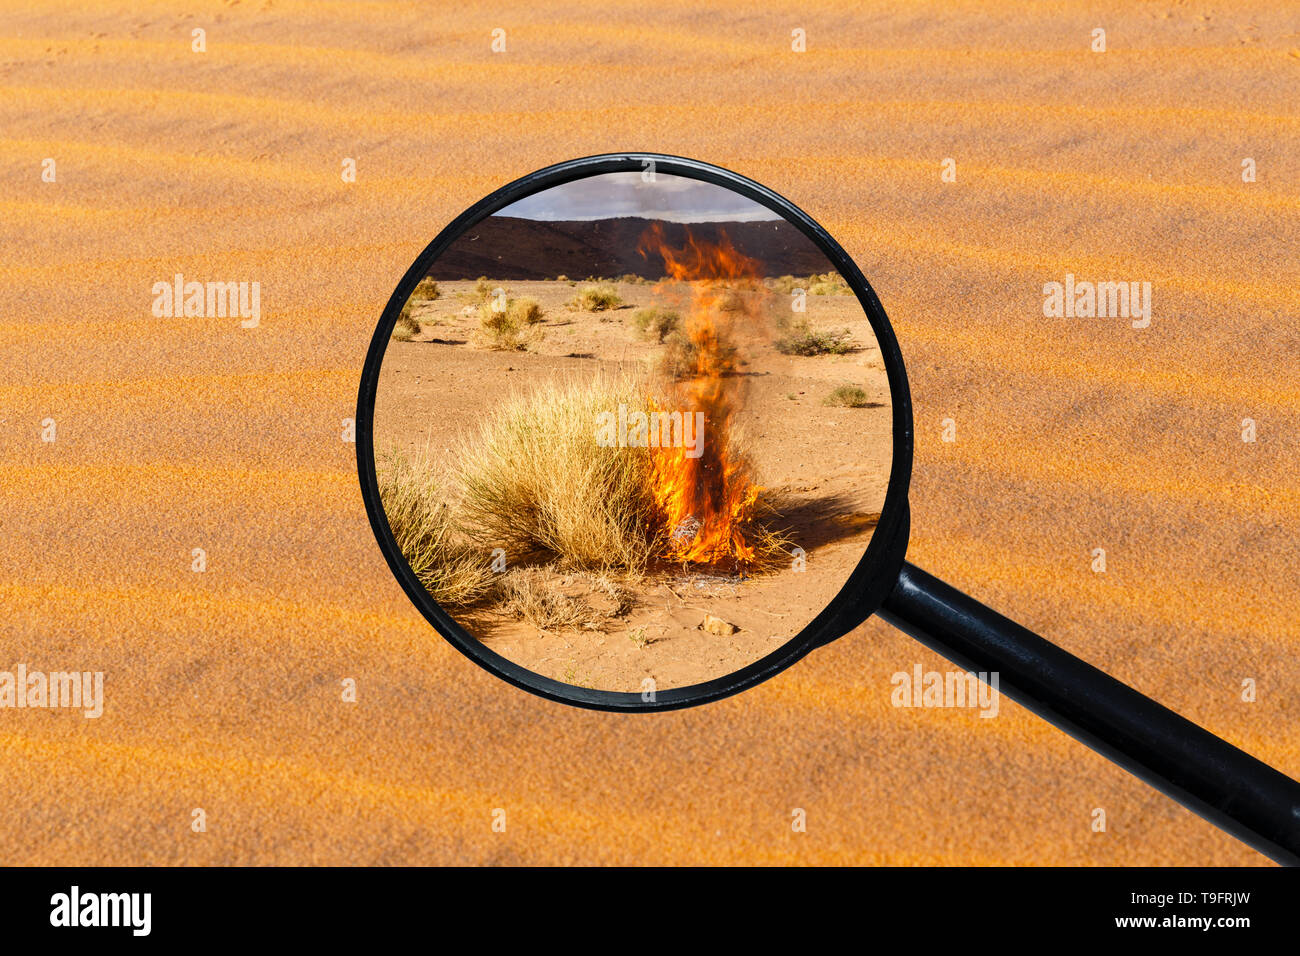 Dry burning bush in the Sahara desert, view through a magnifying glass against the background of sand - Stock Image